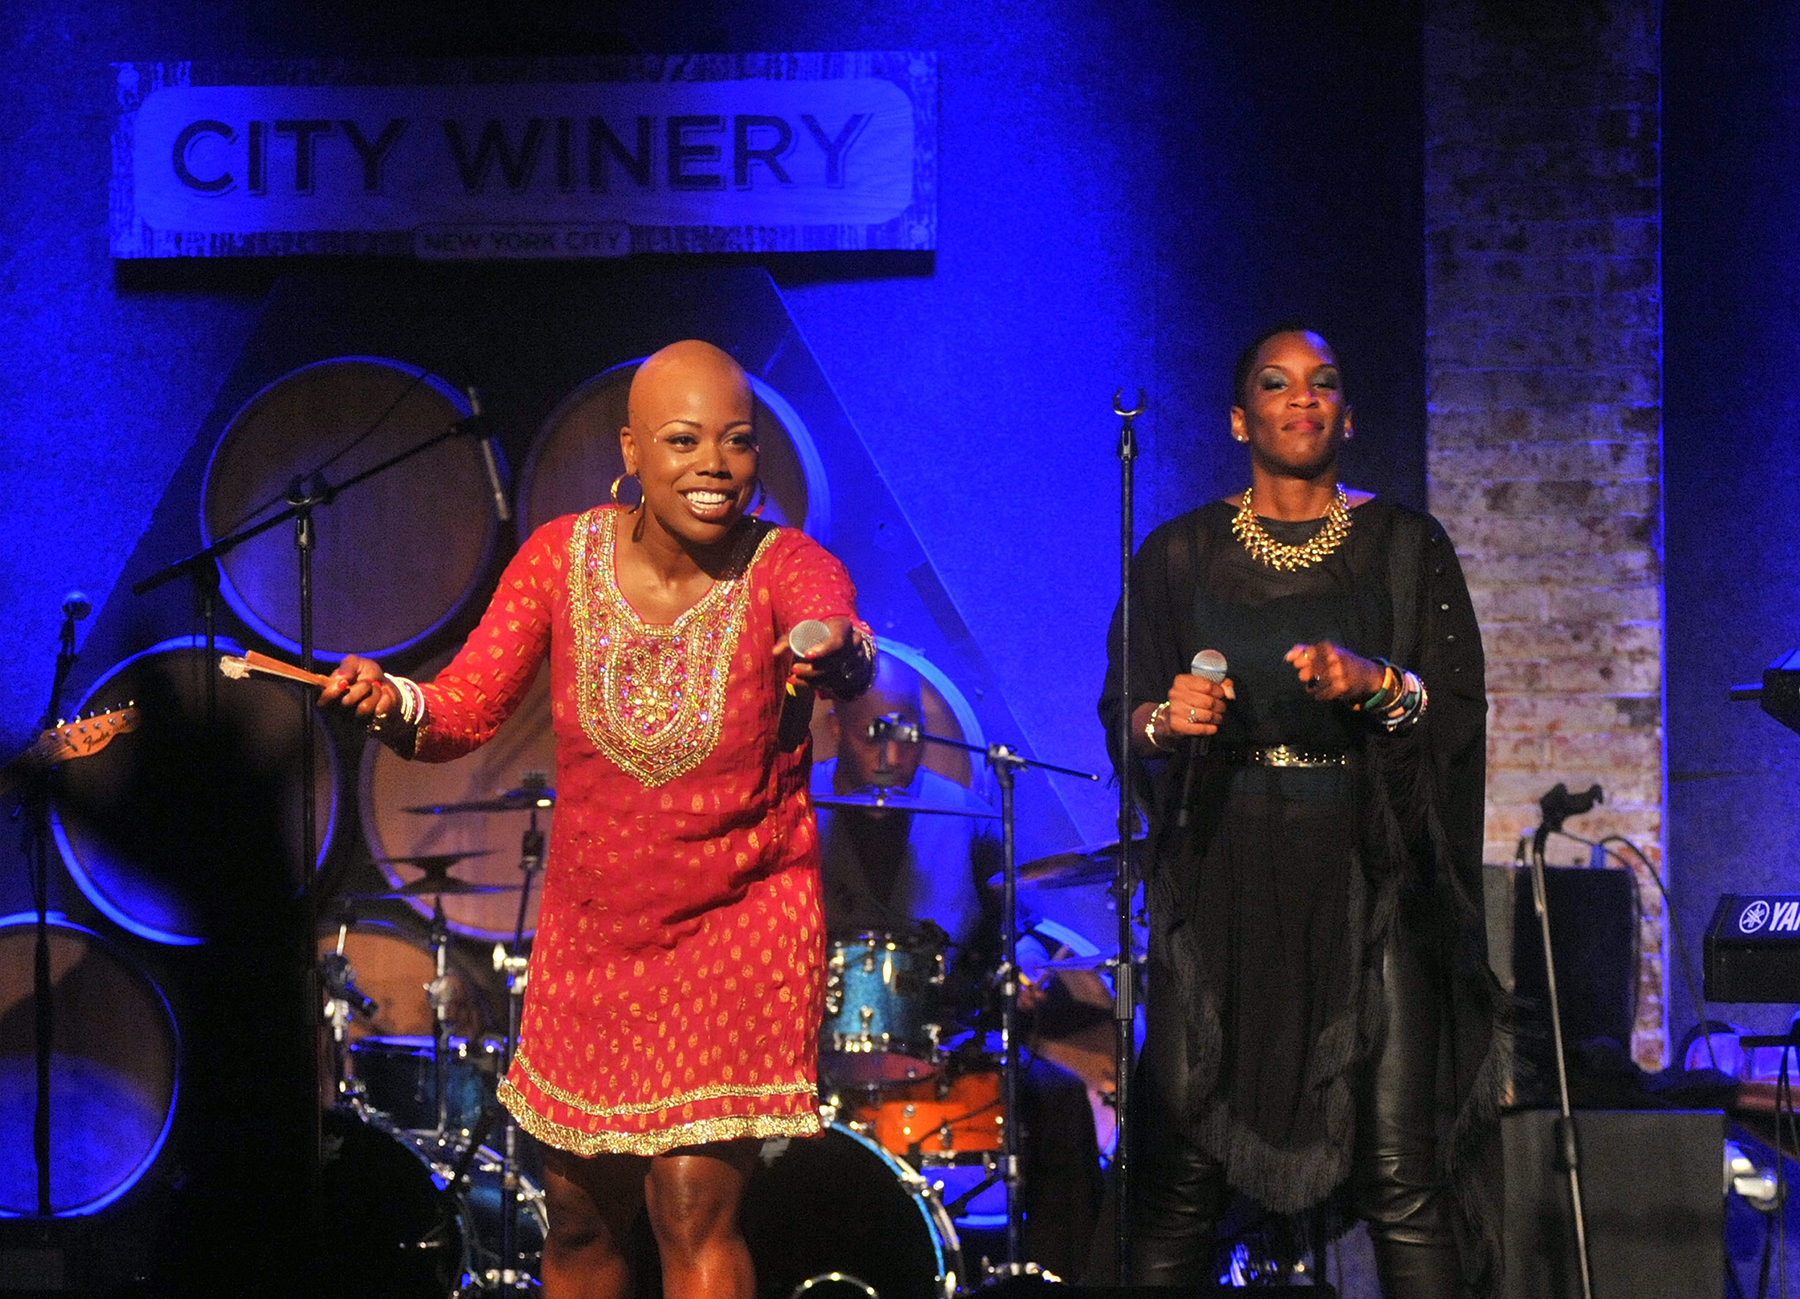 NEW YORK, NY - AUGUST 21: Singer Shelby J and Liv Warfield perform at City Winery on August 21, 2013 in New York City. (Photo by Henry S. Dziekan III/Getty Images)